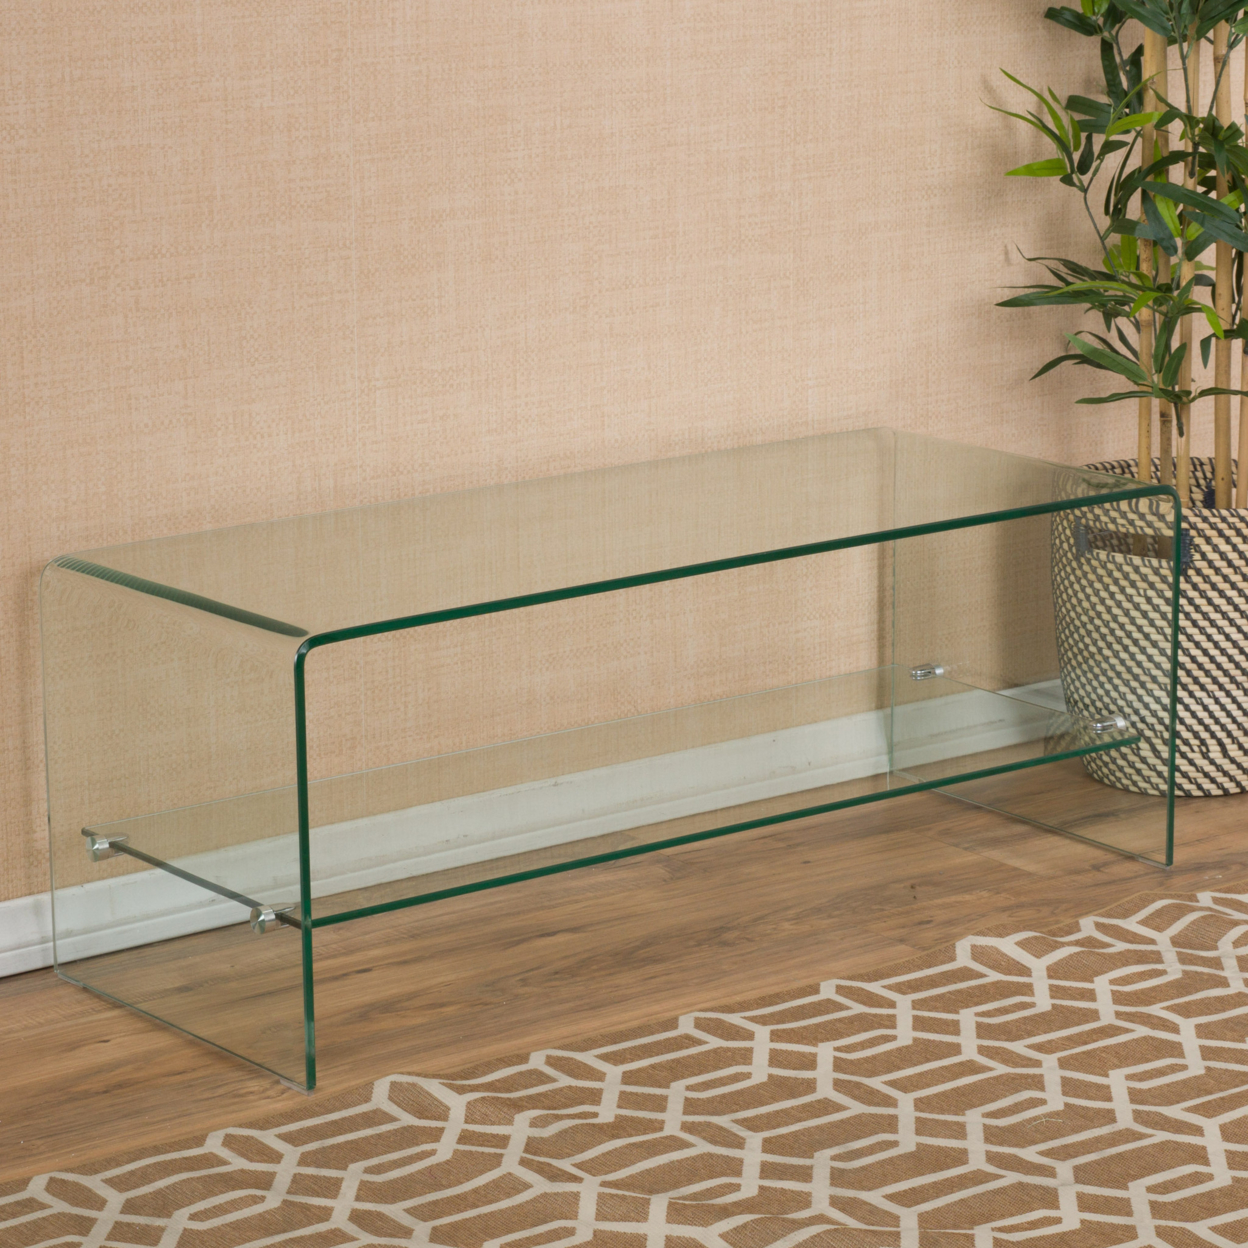 Classon Glass Entertainment TV Console Stand w/ Shelf